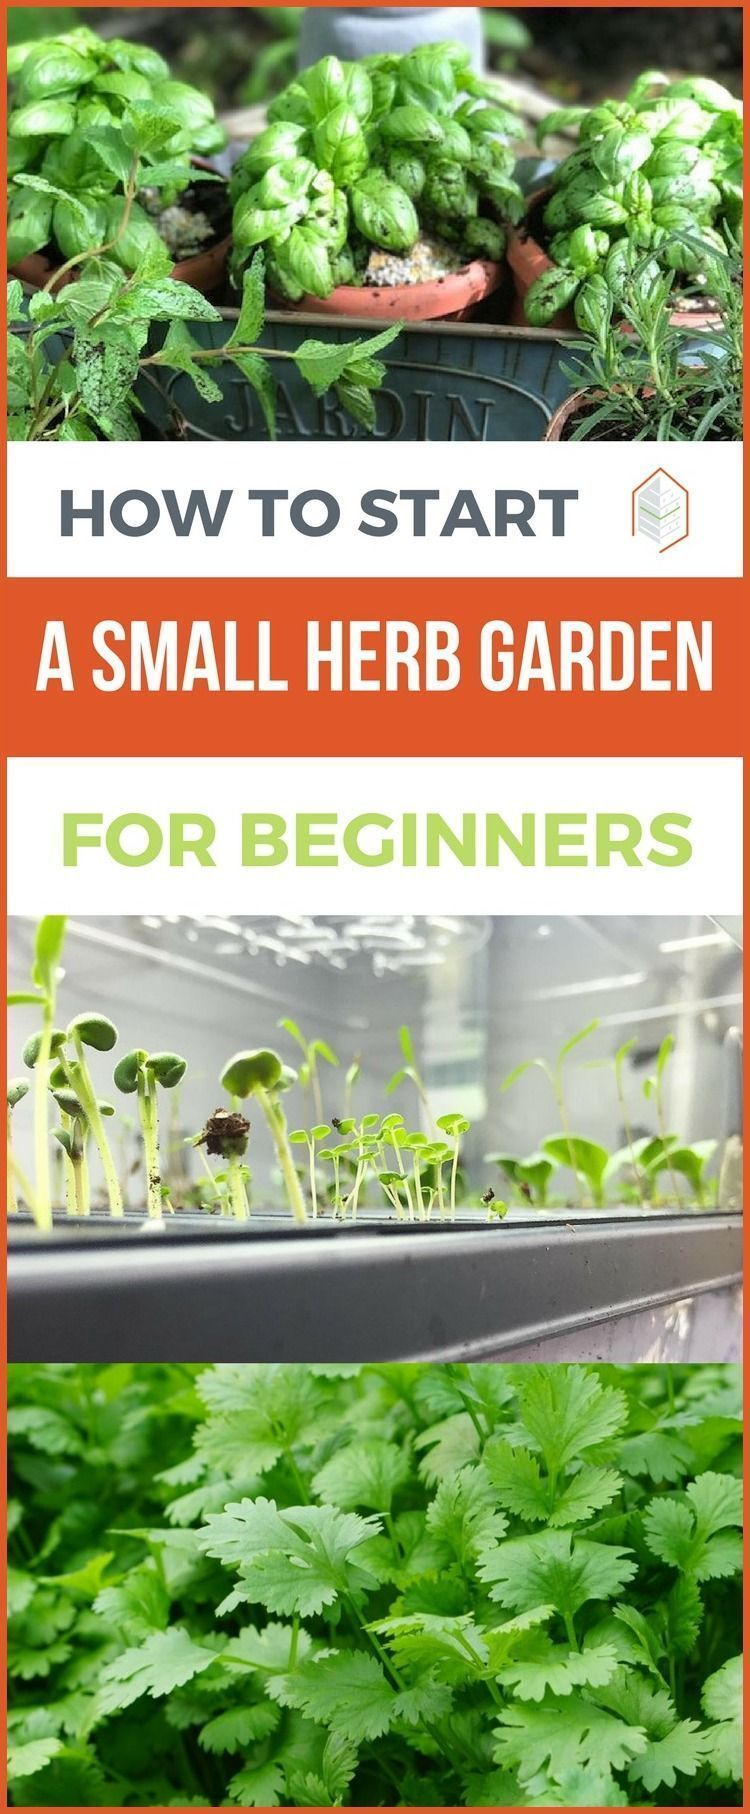 How To Start A Small Herb Garden For Beginners How To Start A